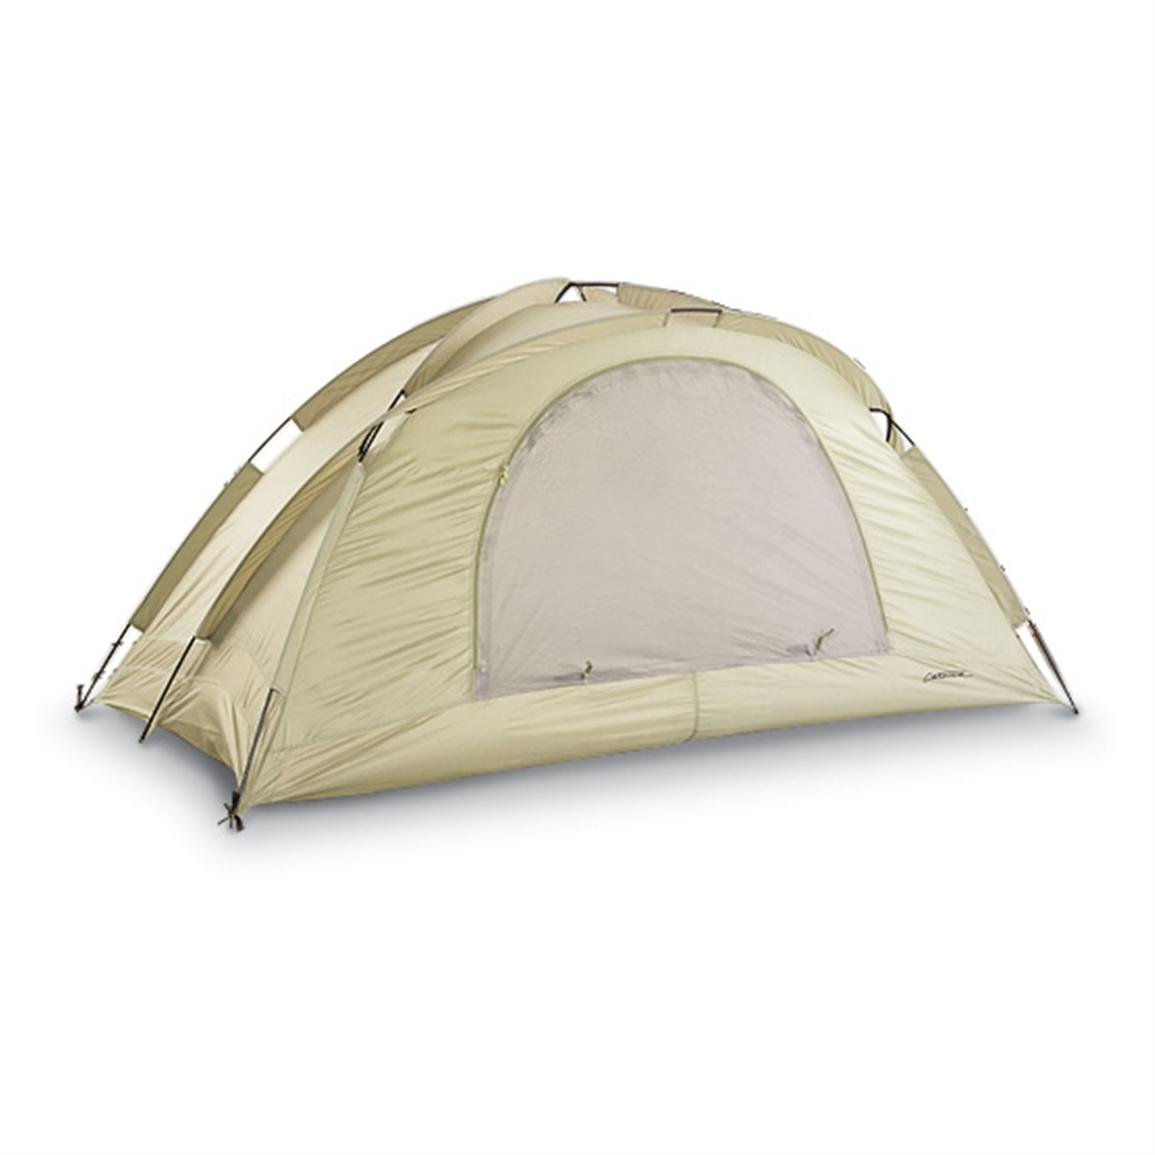 Without Rainfly  sc 1 st  Sportsmanu0027s Guide & USMC Military Spec Catoma® 2 - man 4 - season Combat Tent - 120321 ...